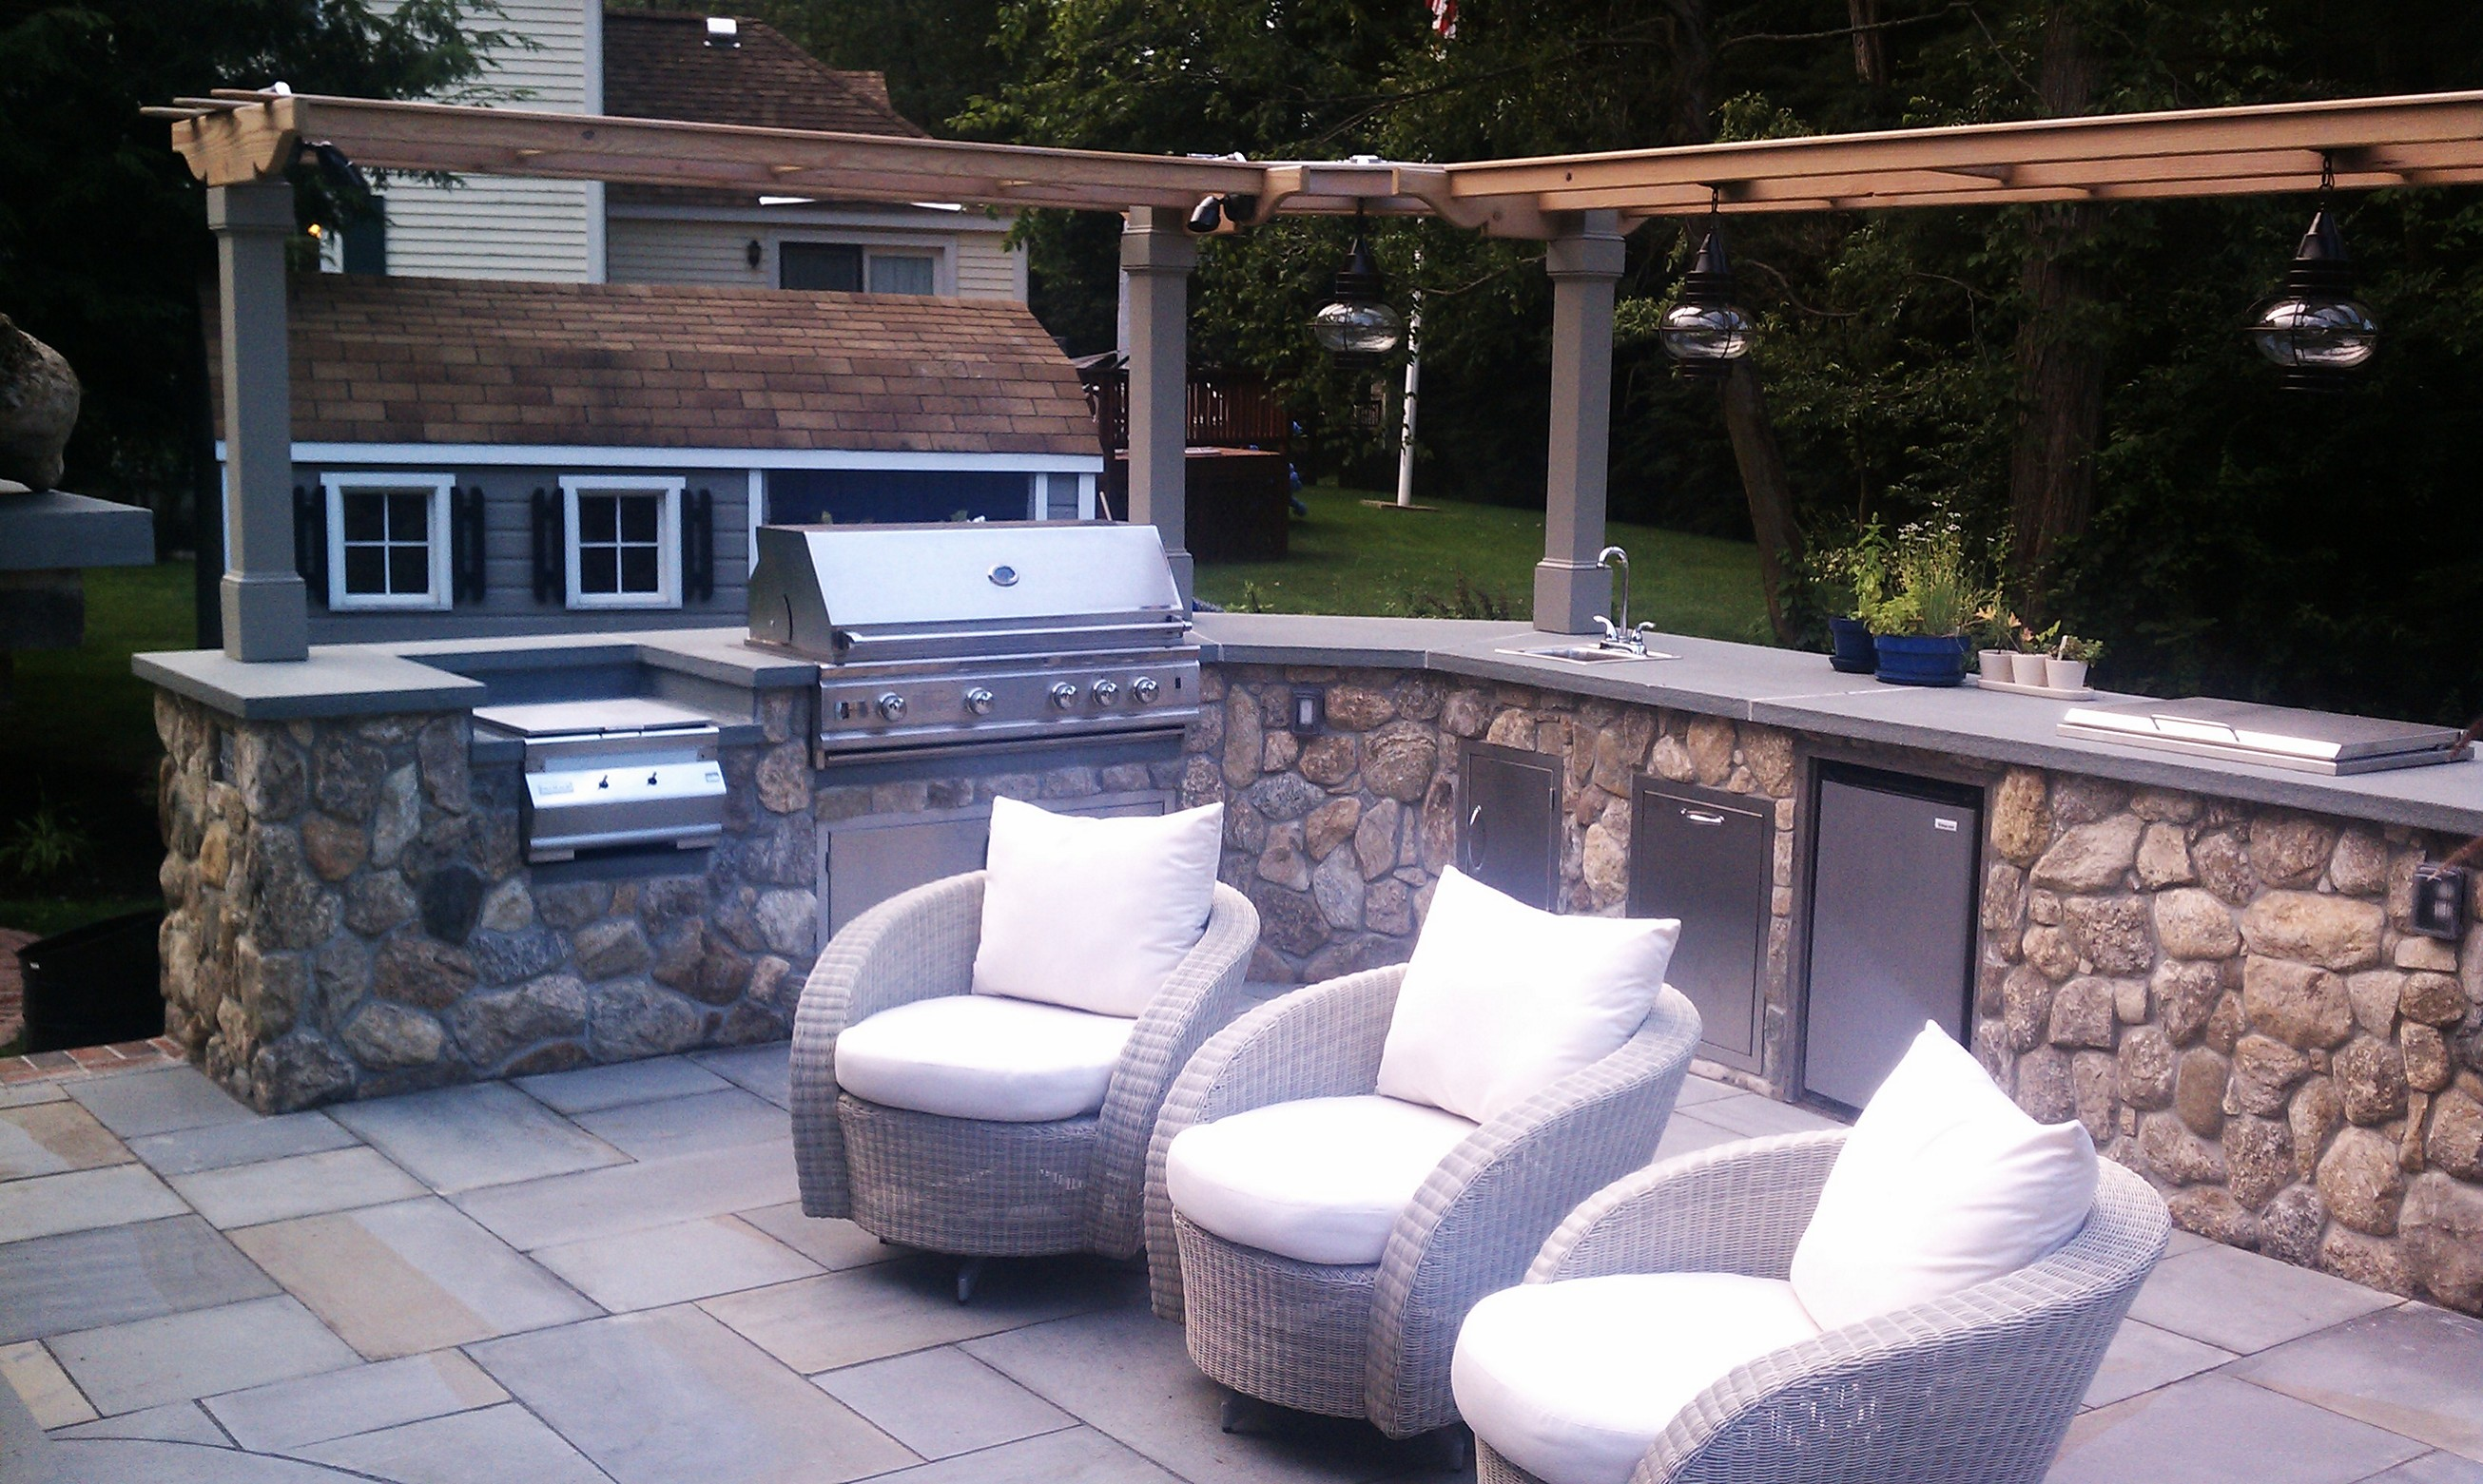 Wonderful Patio Design Featuring Modular Outdoor Kitchen With